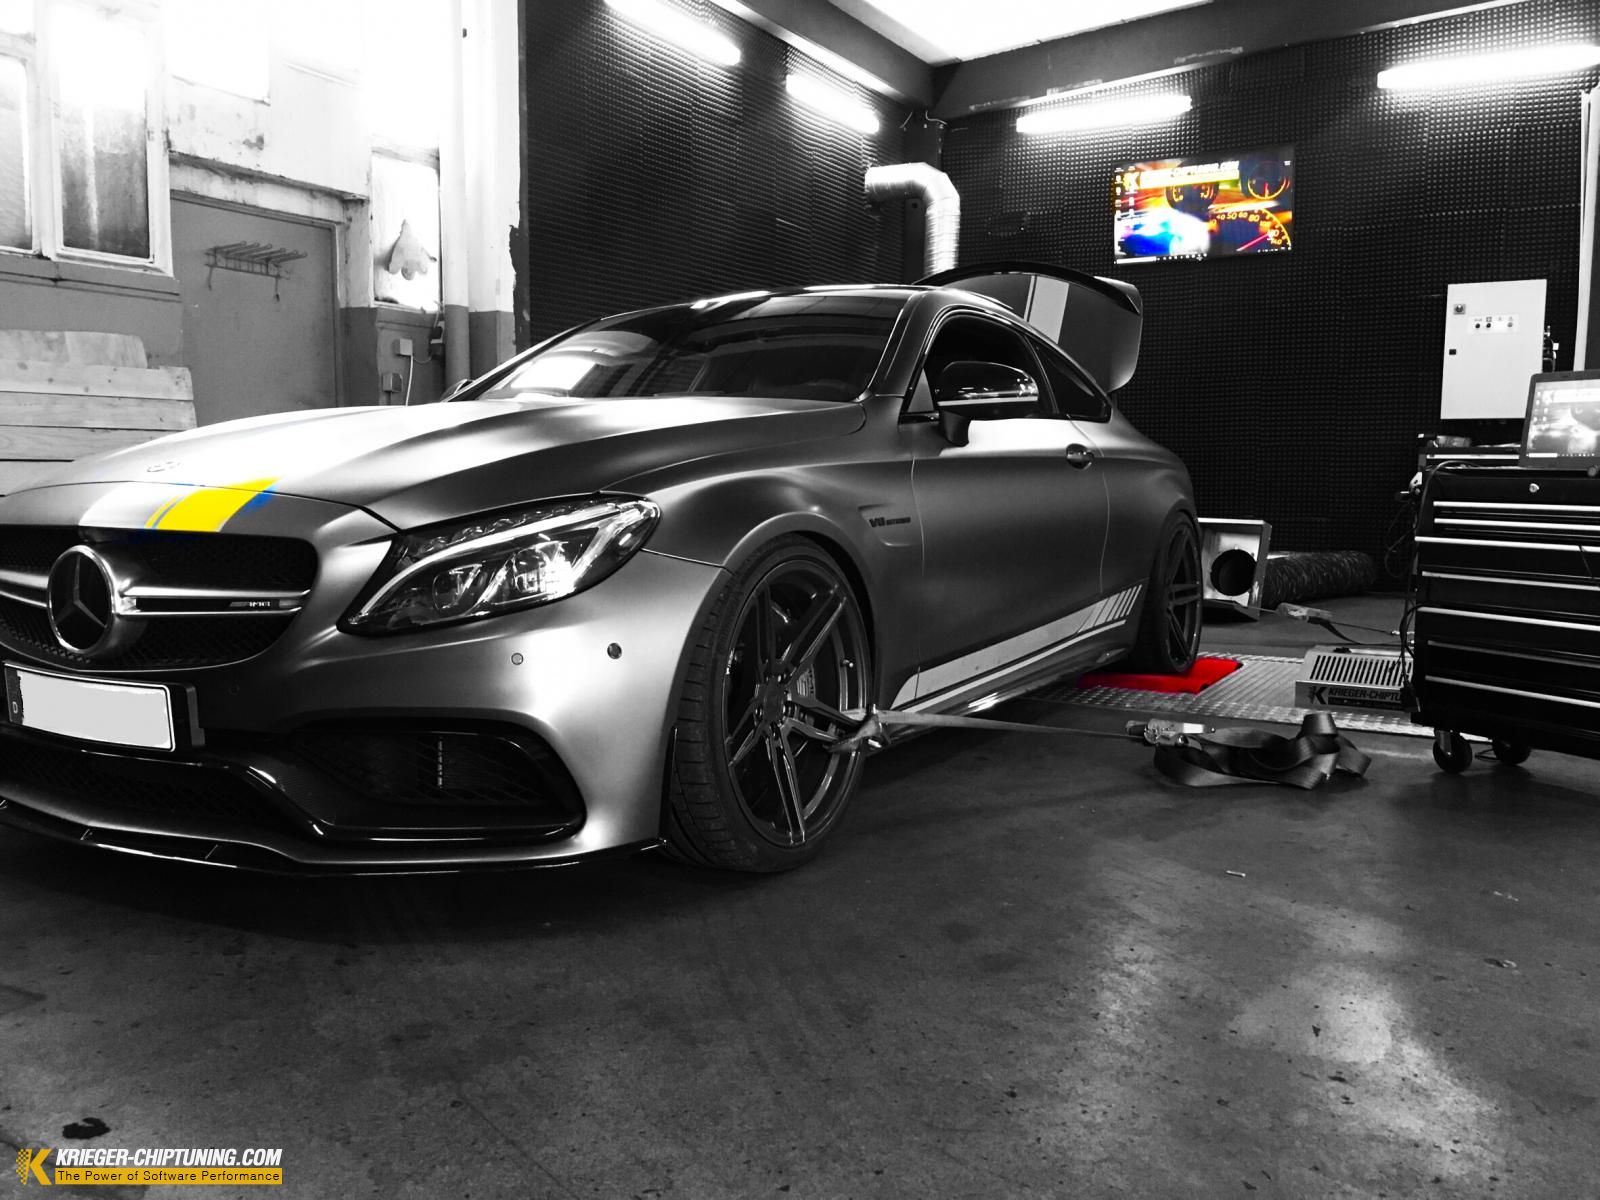 AMG C63s EDITION1 - Chip-Tuning in NRW